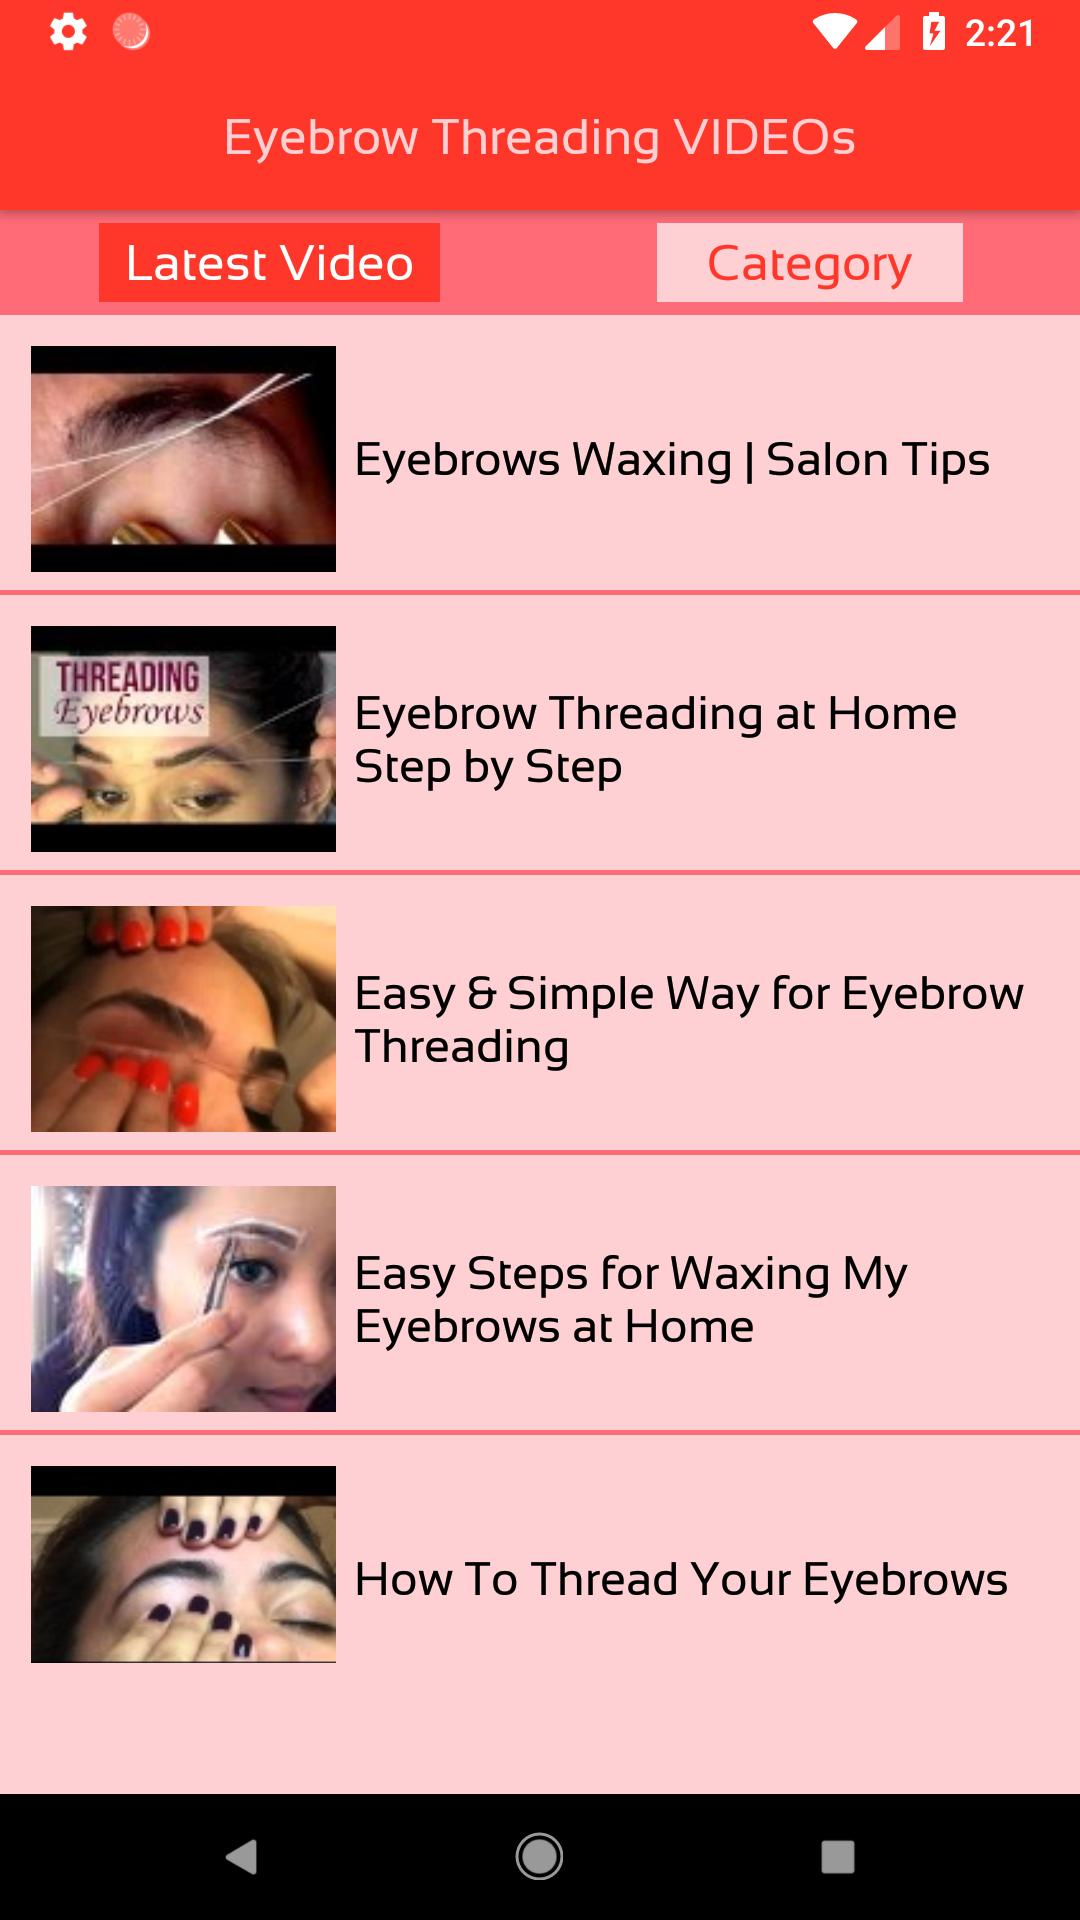 Eyebrow Threading VIDEOs for Android - APK Download